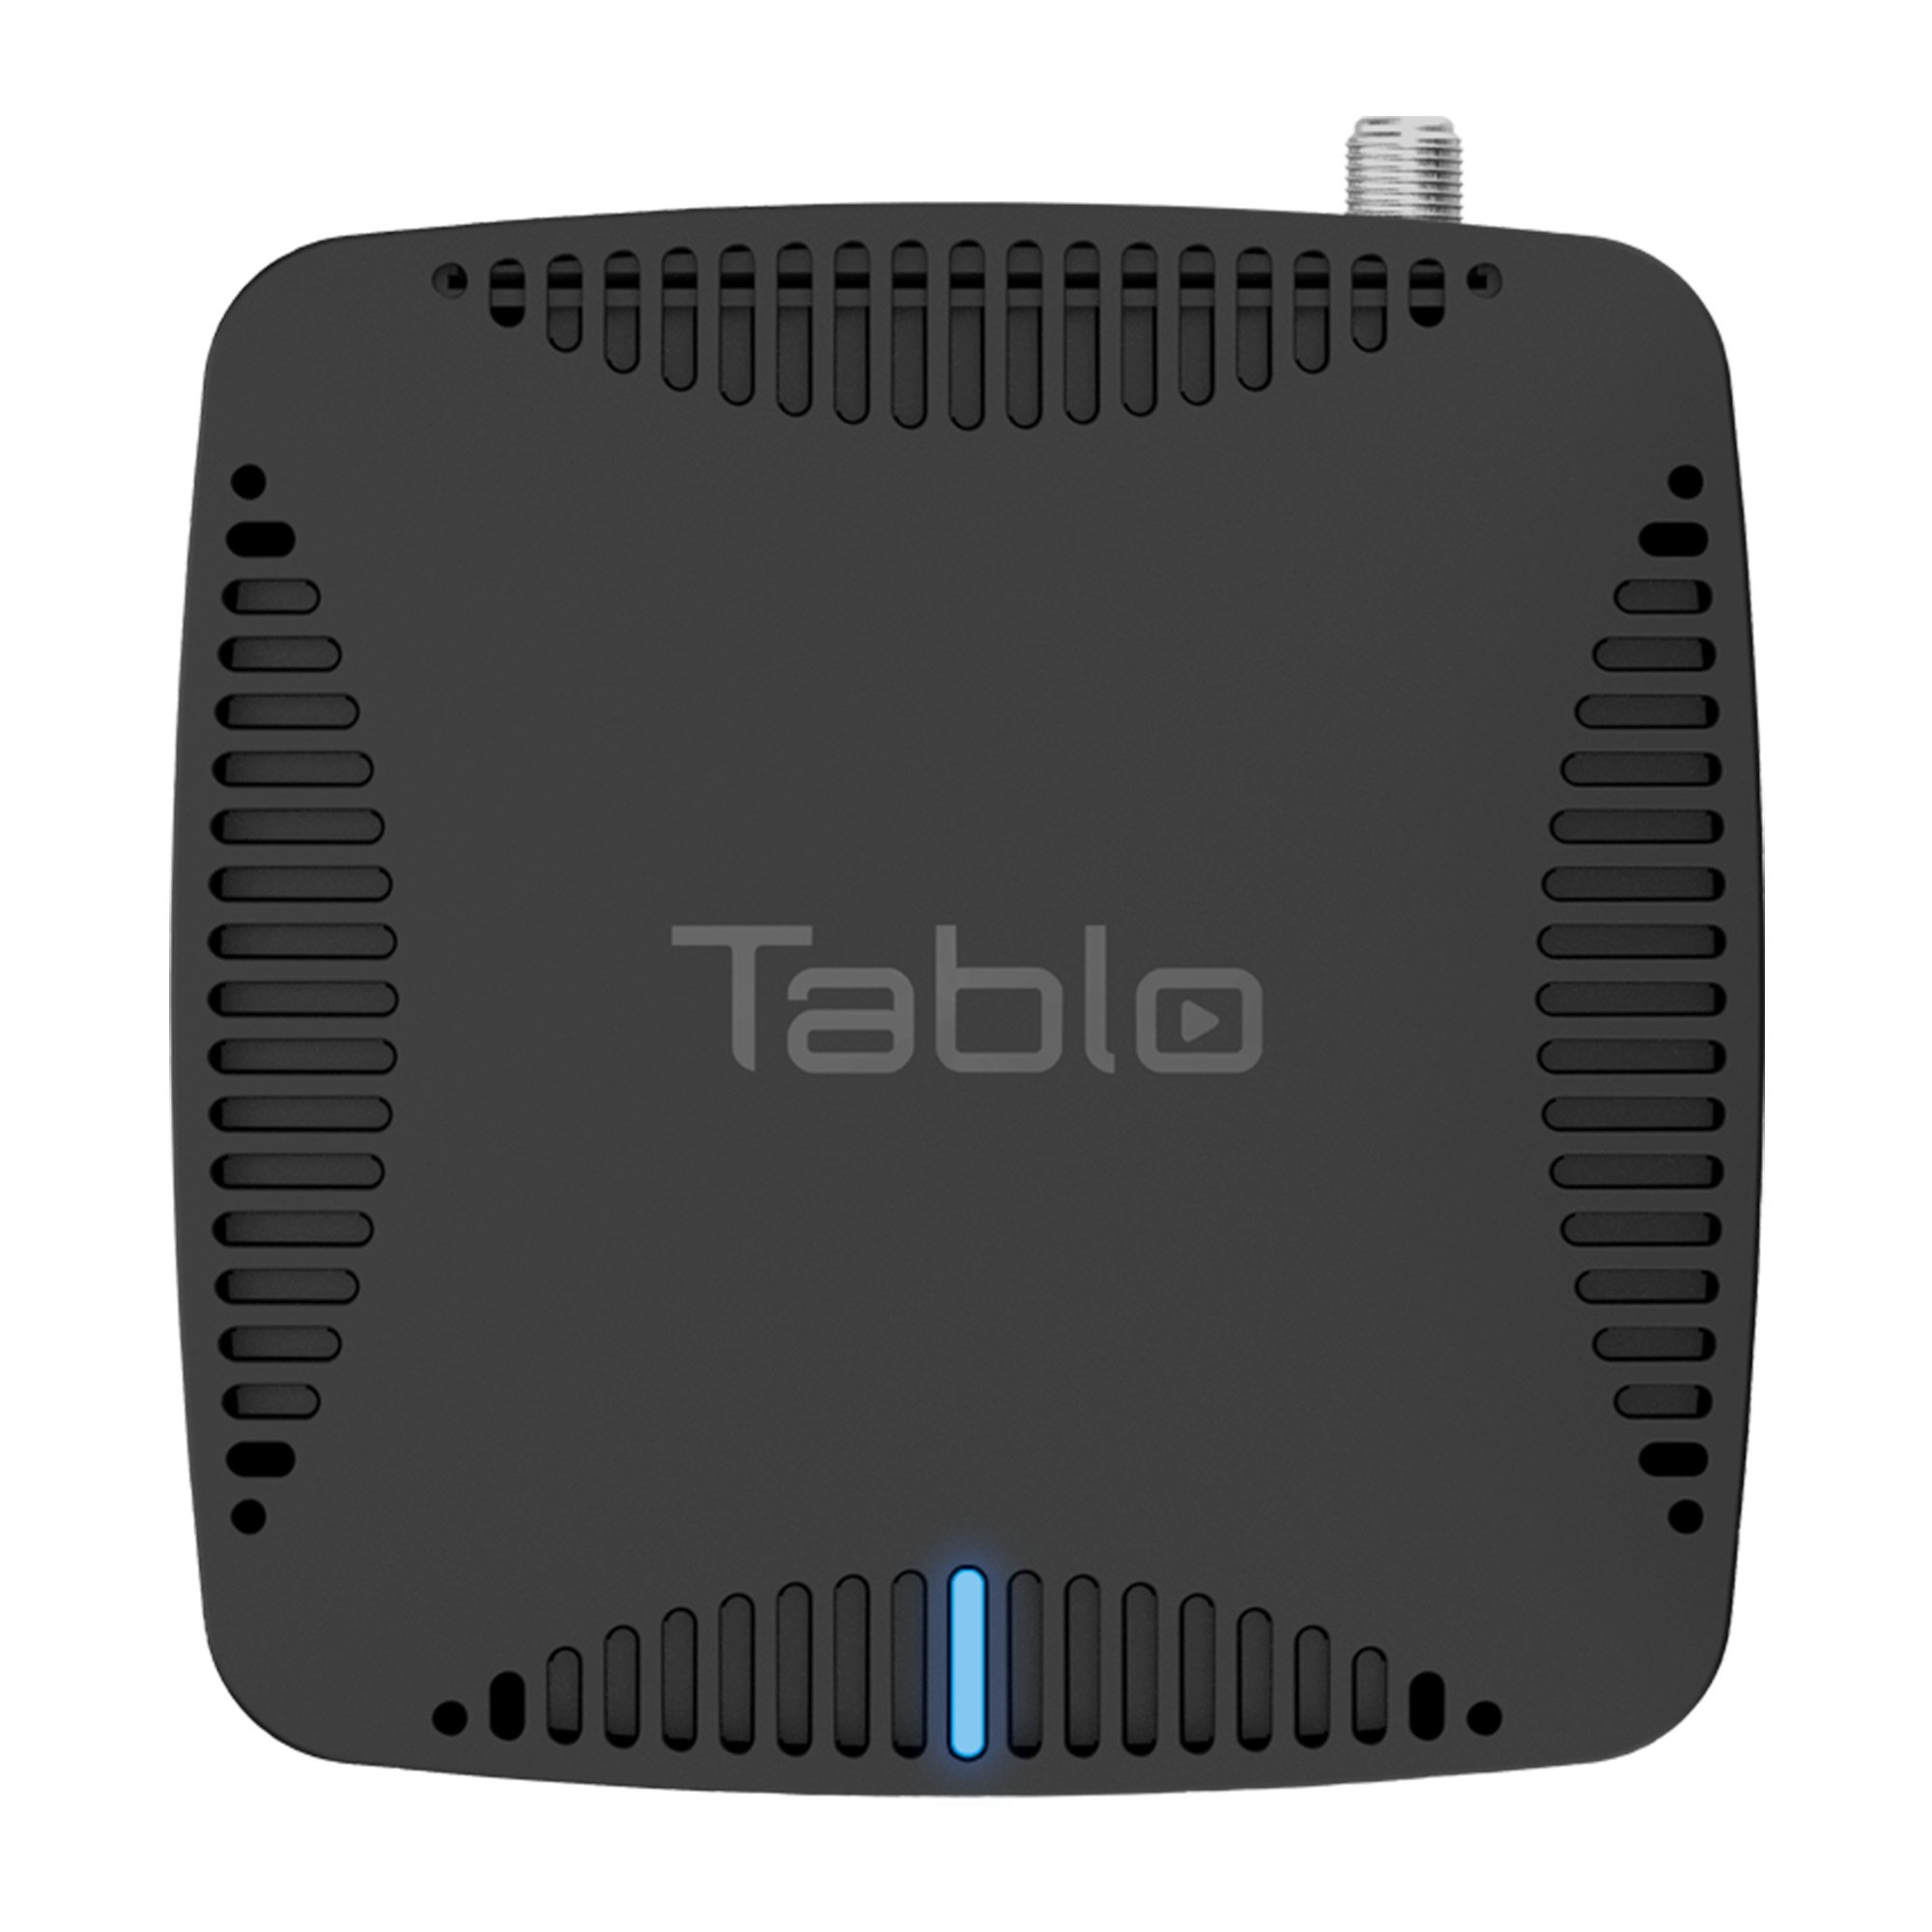 Tablo Dual LITE OTA DVR for Cord Cutters - with WiFi & Automatic Commercial Skip by Tablo